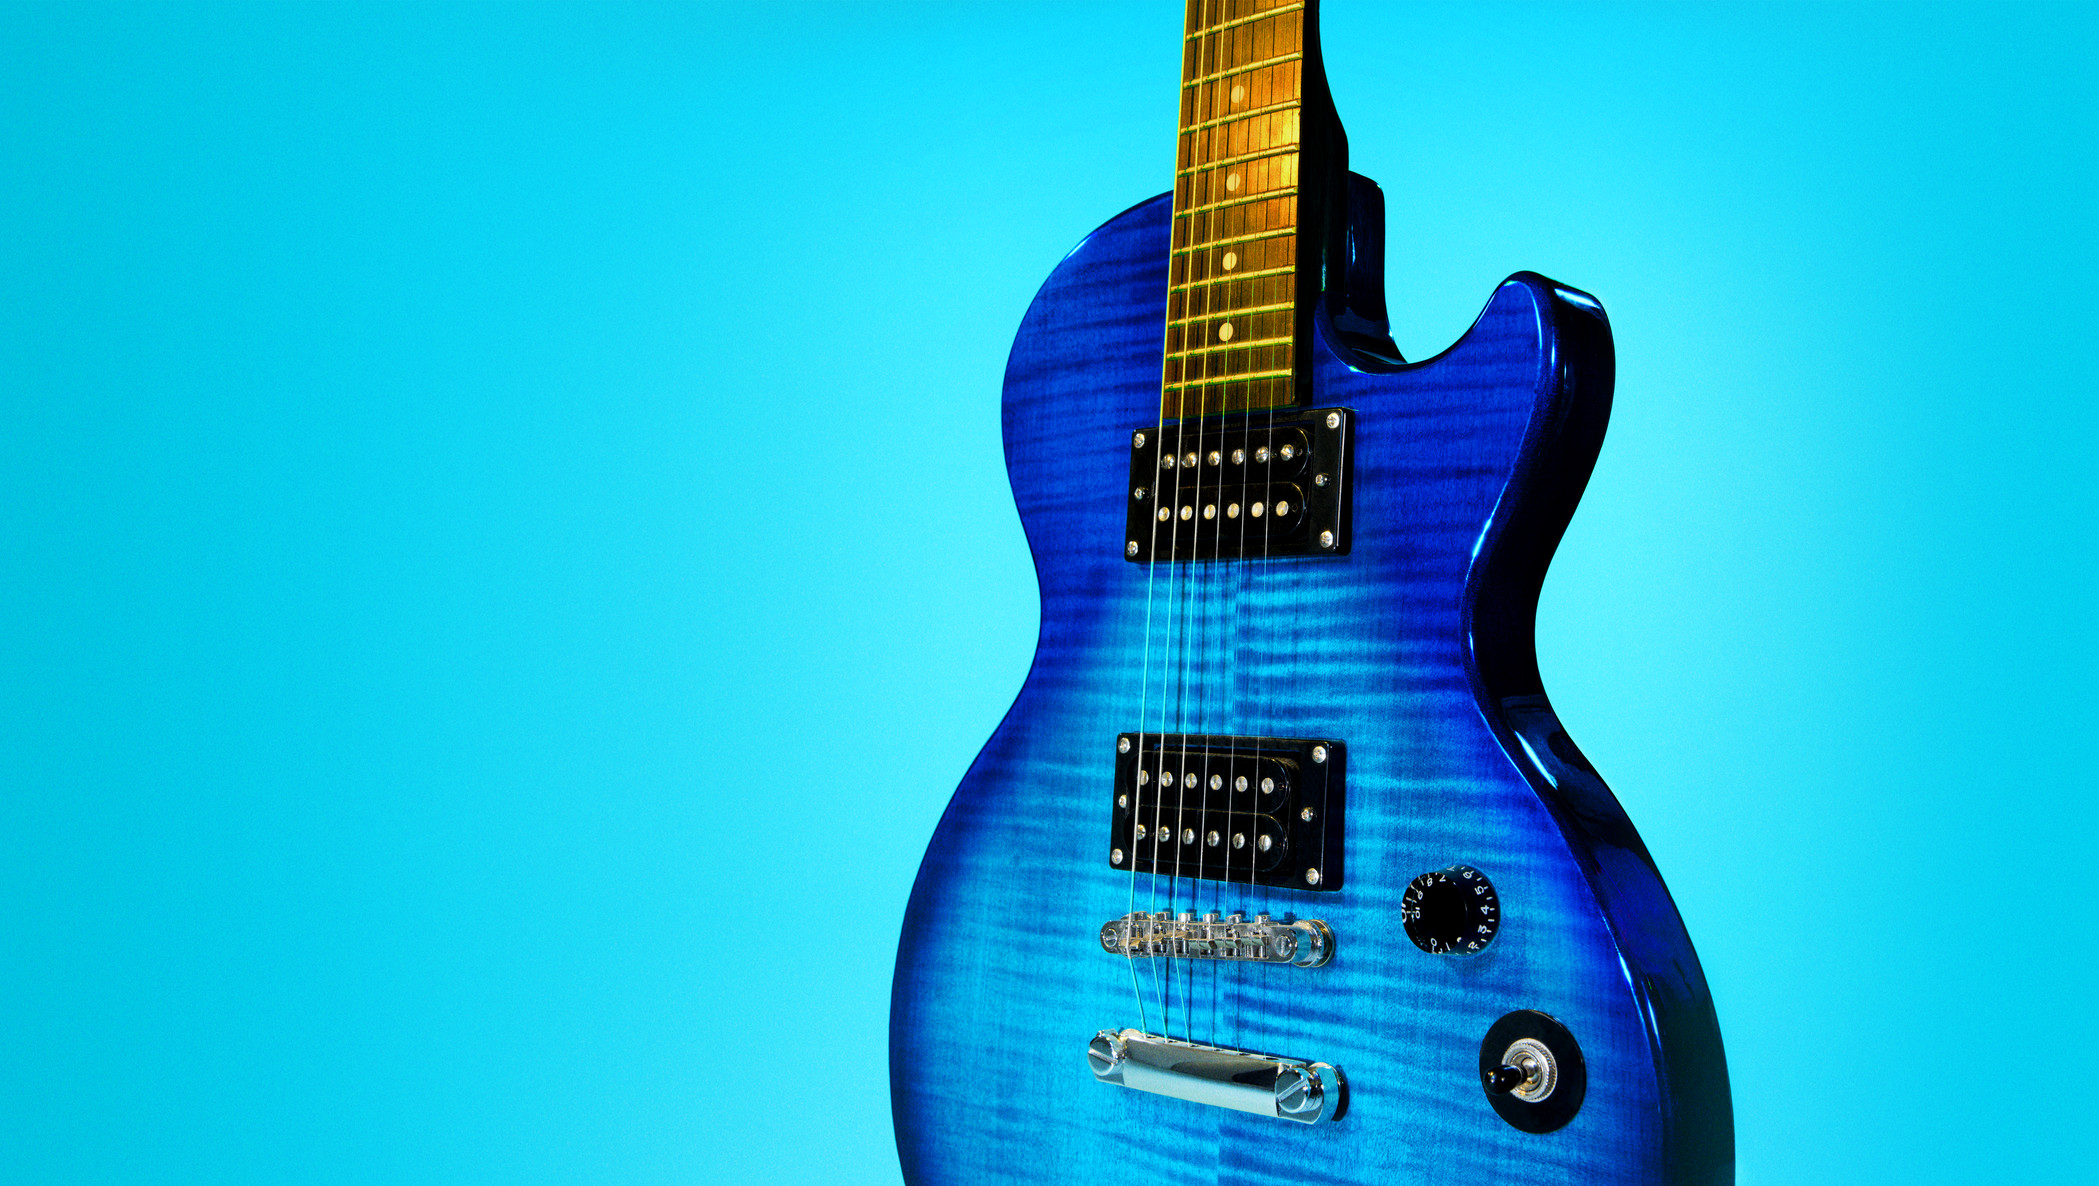 blue and black electric guitar